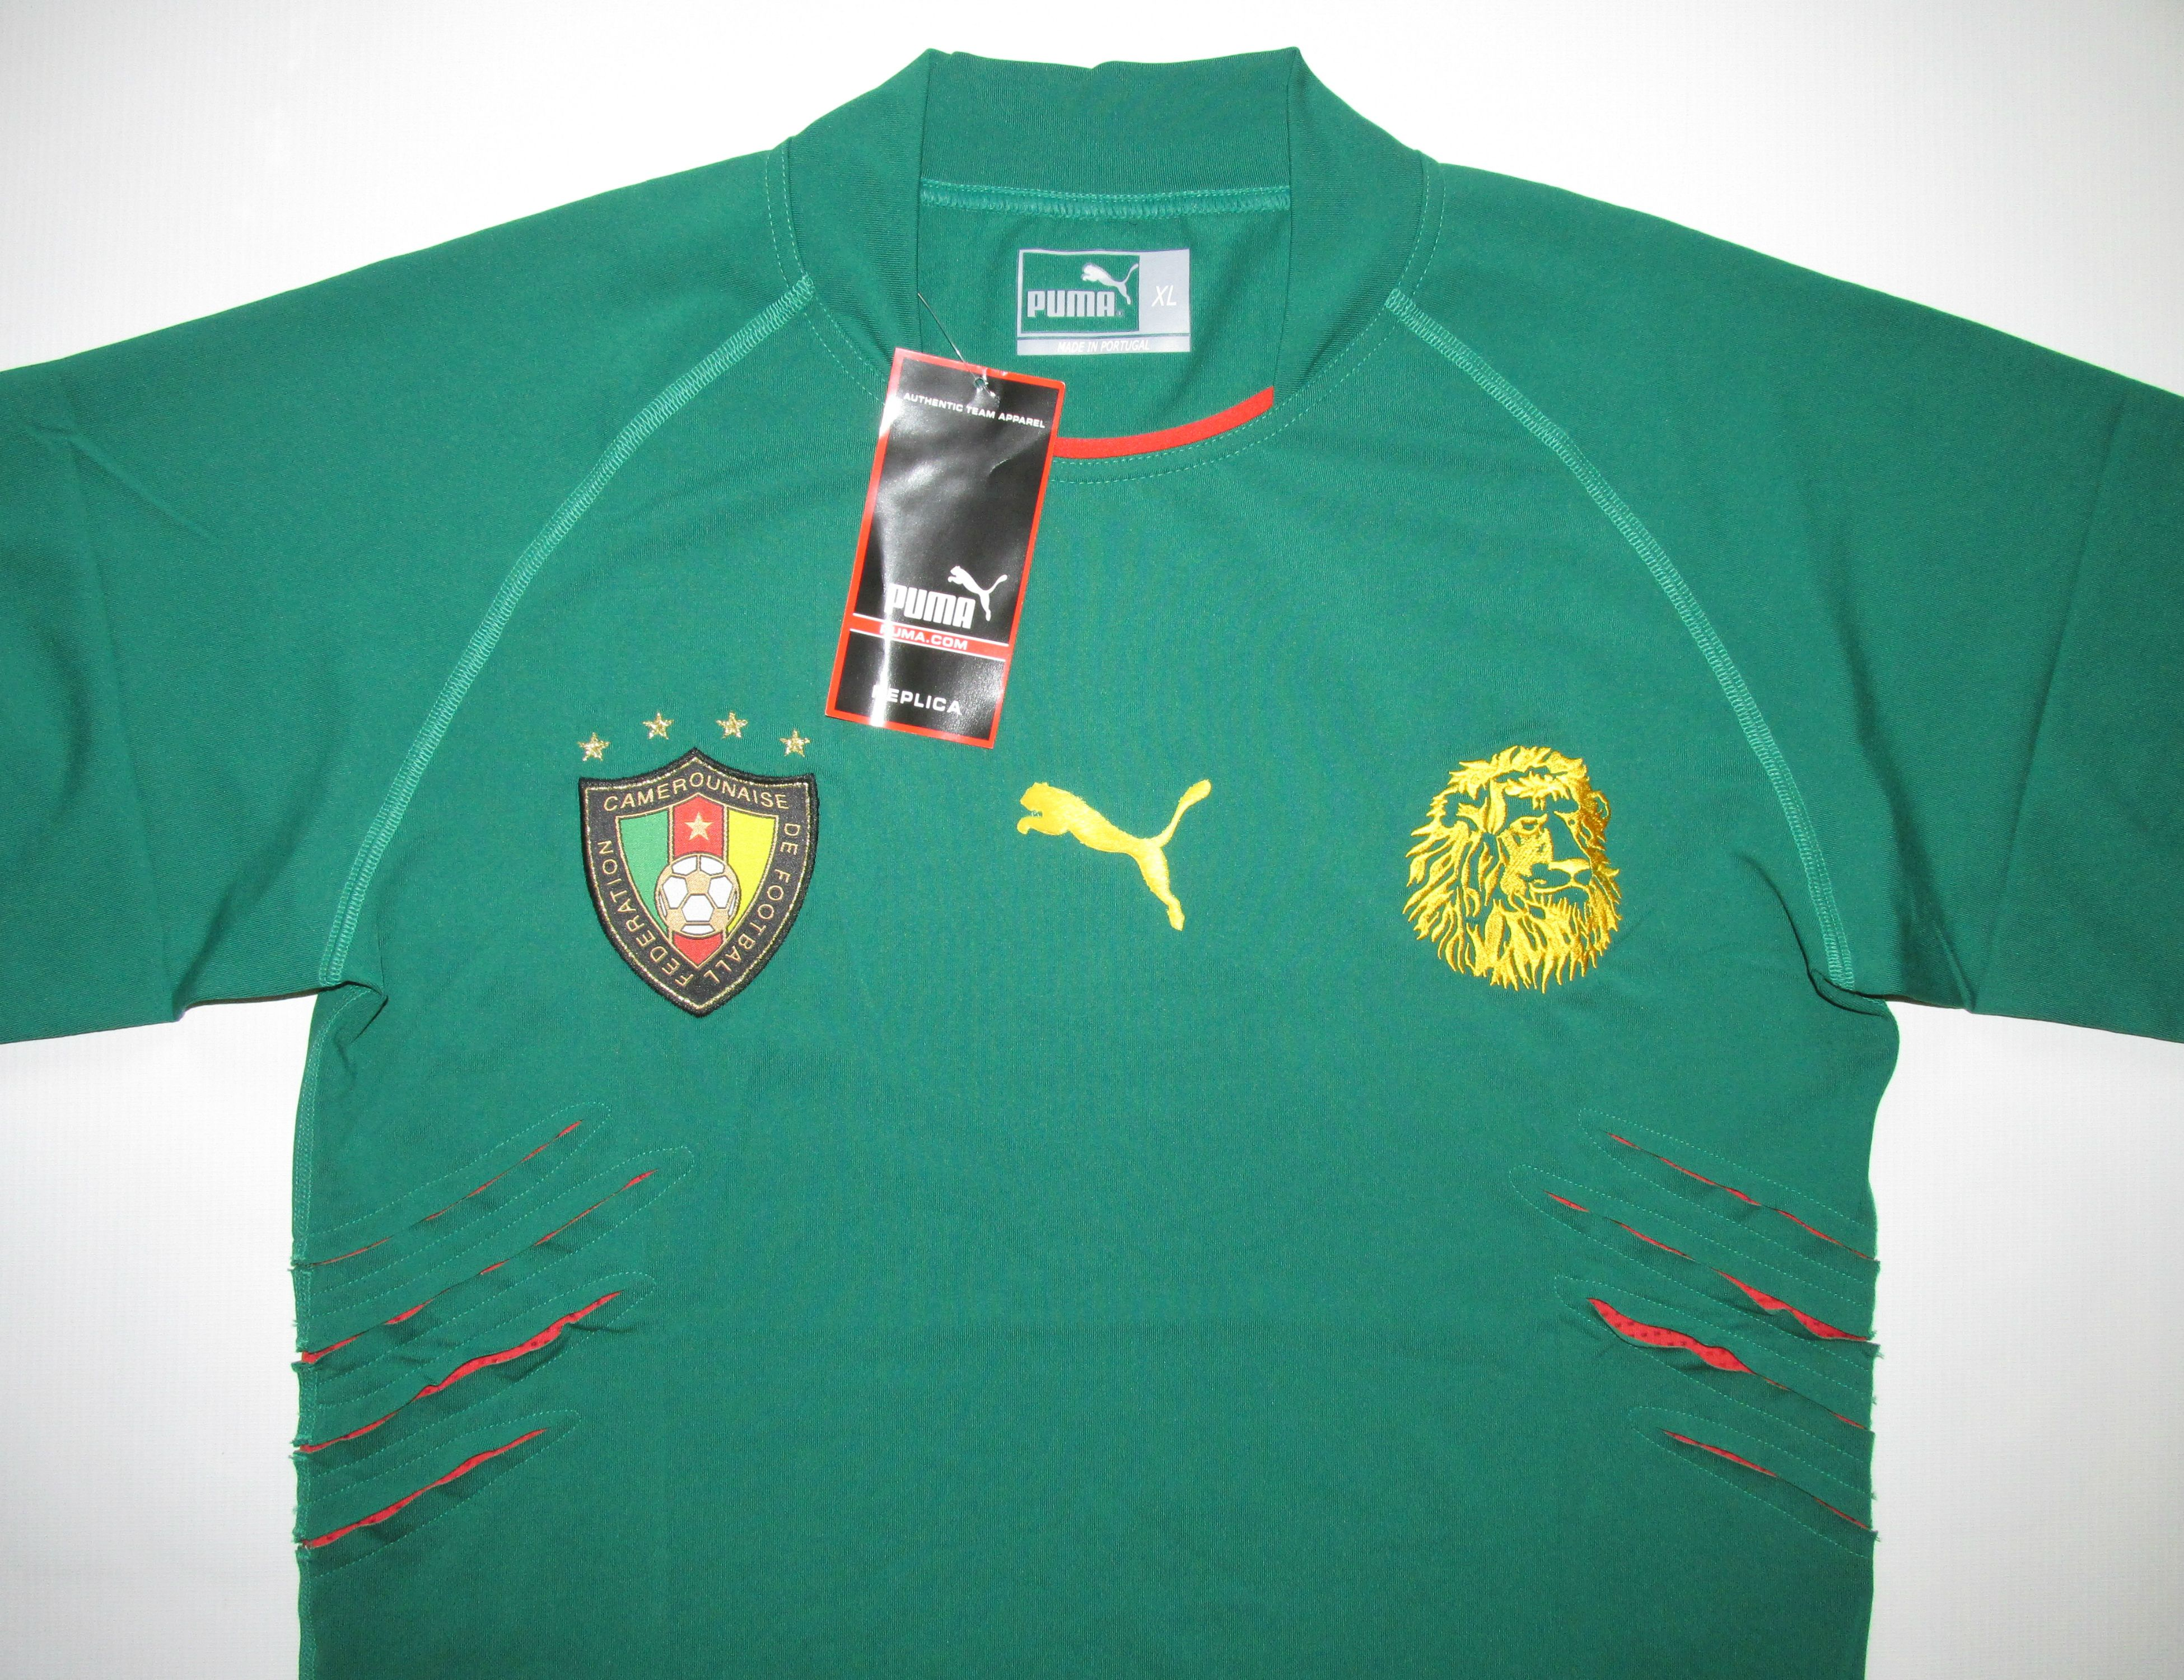 cf35db744 Cameroon 2004 2005 2006 home player issue football shirt by Puma BNWT  maillot Africa soccer jersey  cameroon  nationalteam  africa  football   soccer  puma ...